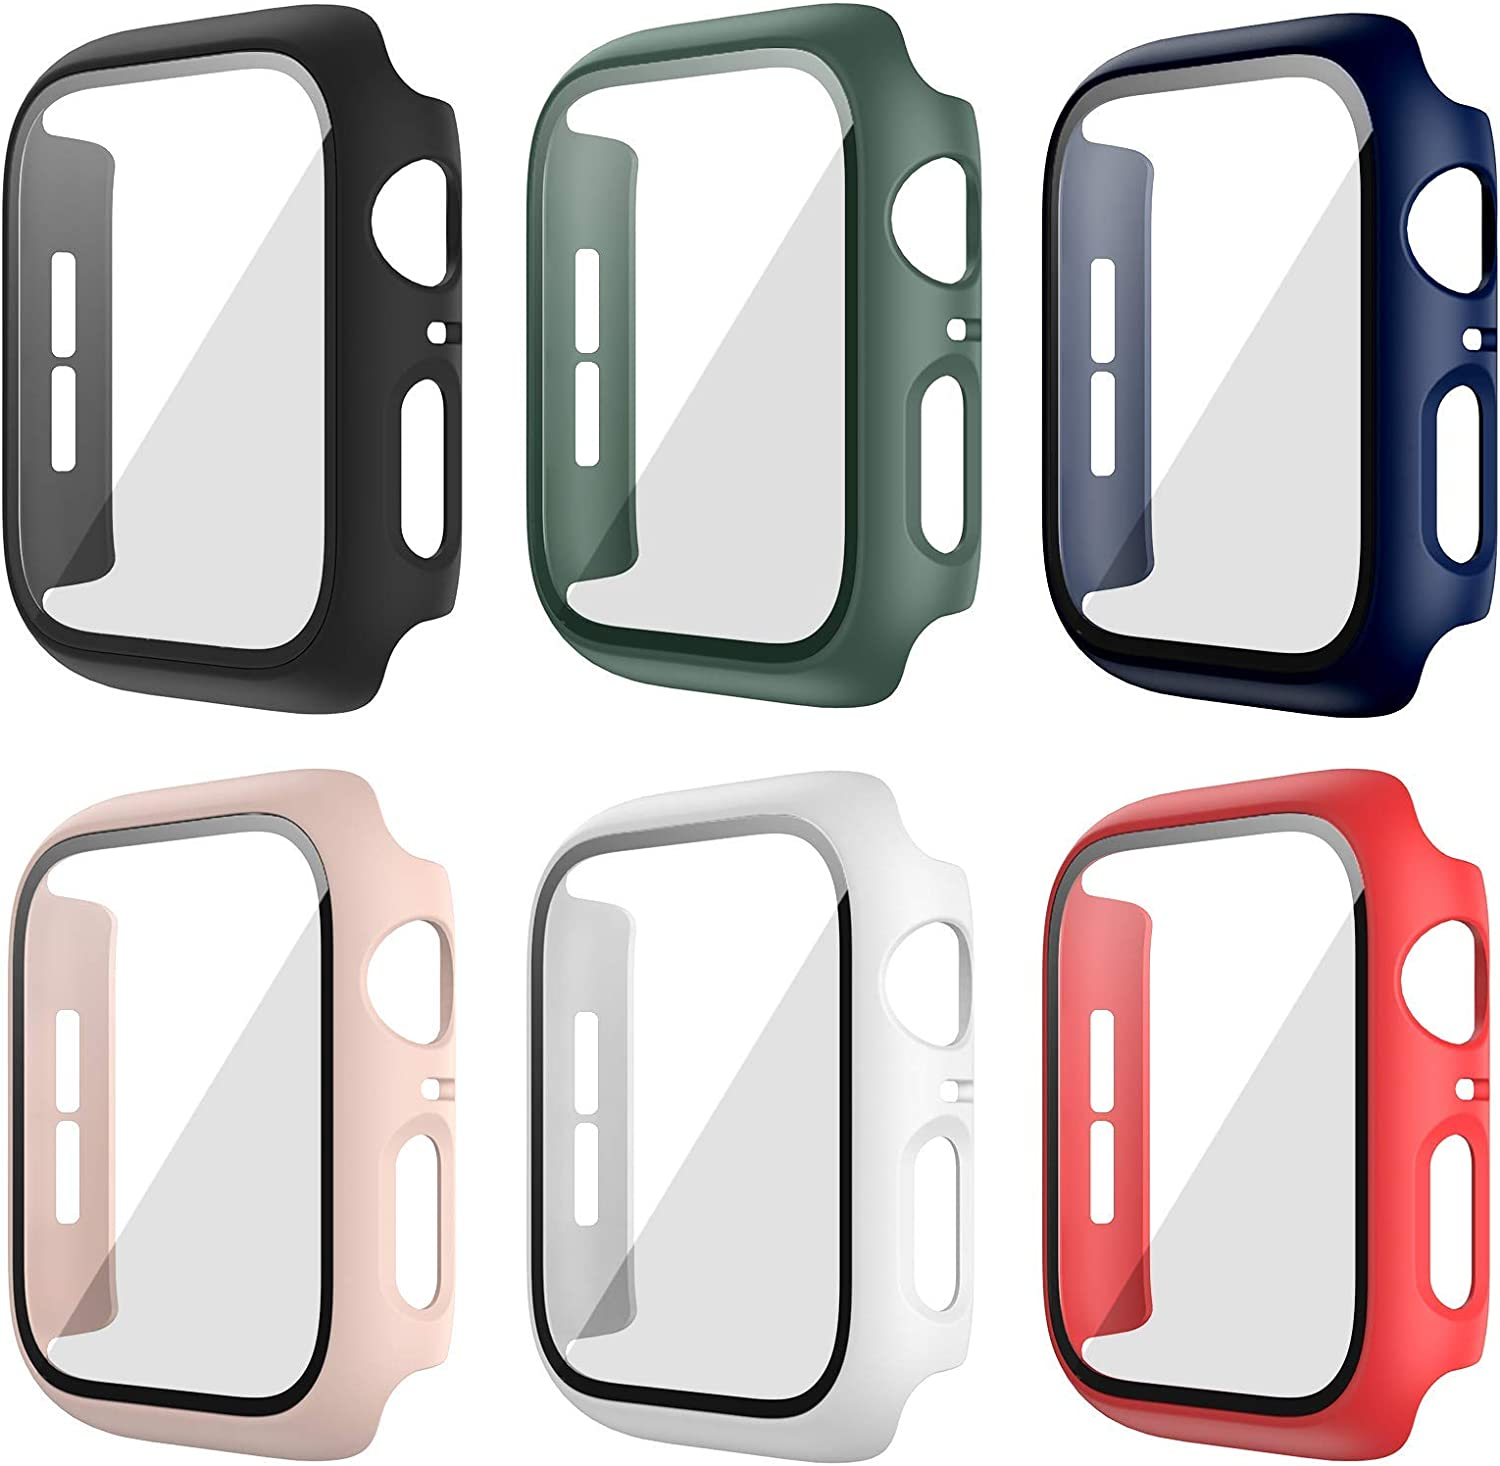 6 Pack Hard Case for Apple Watch Series 3 42mm with Built-in Tempered Glass Screen Protector,JZK Thin Bumper Full Coverage Bubble-Free Cover for iWatch Series 3/2/1 42mm Accessories